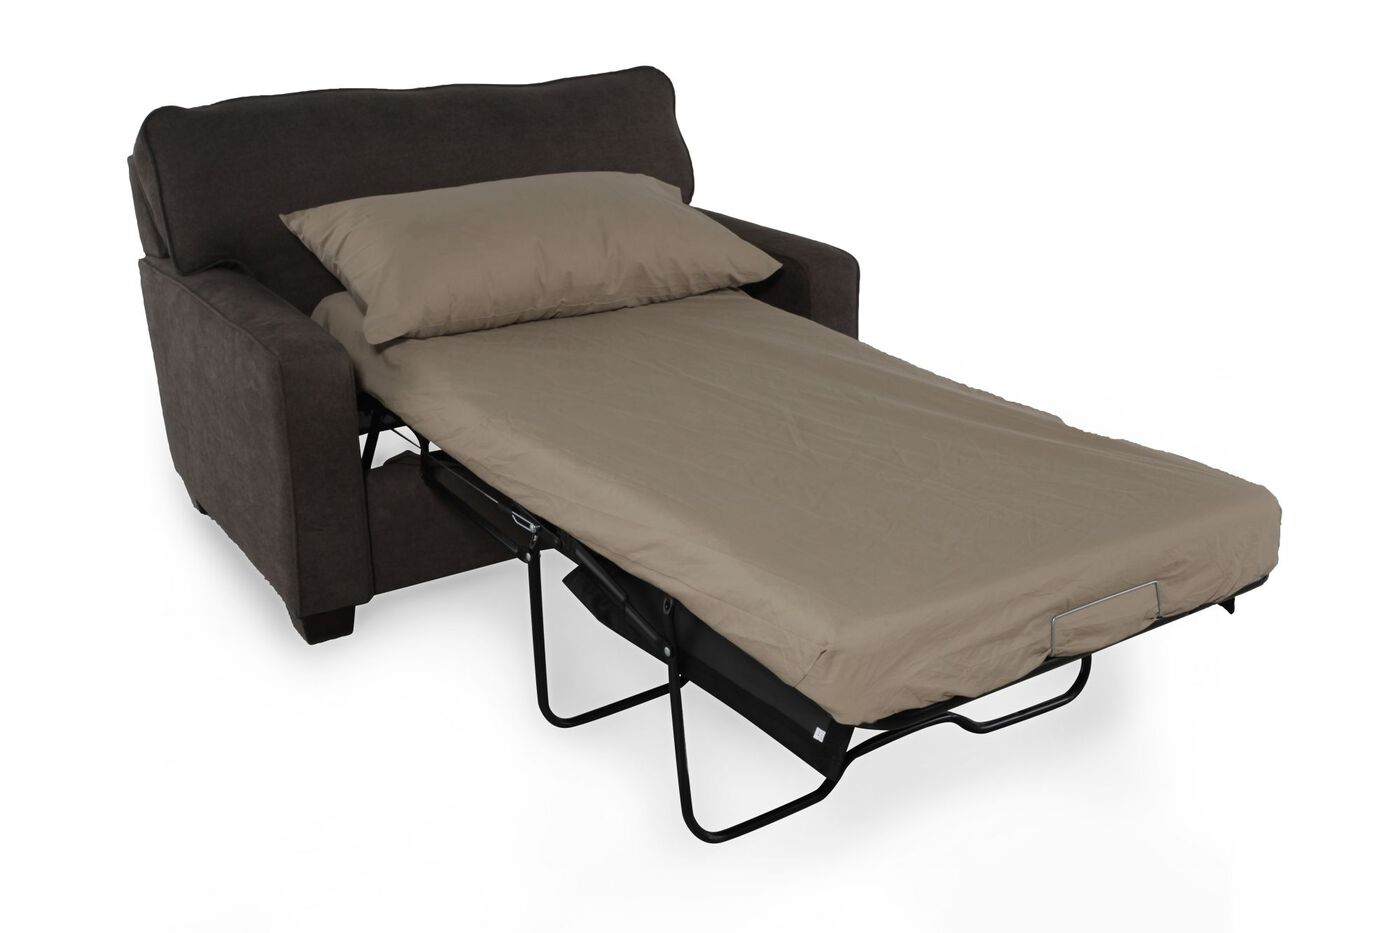 Sofa Snuggler Heated Review Home Co